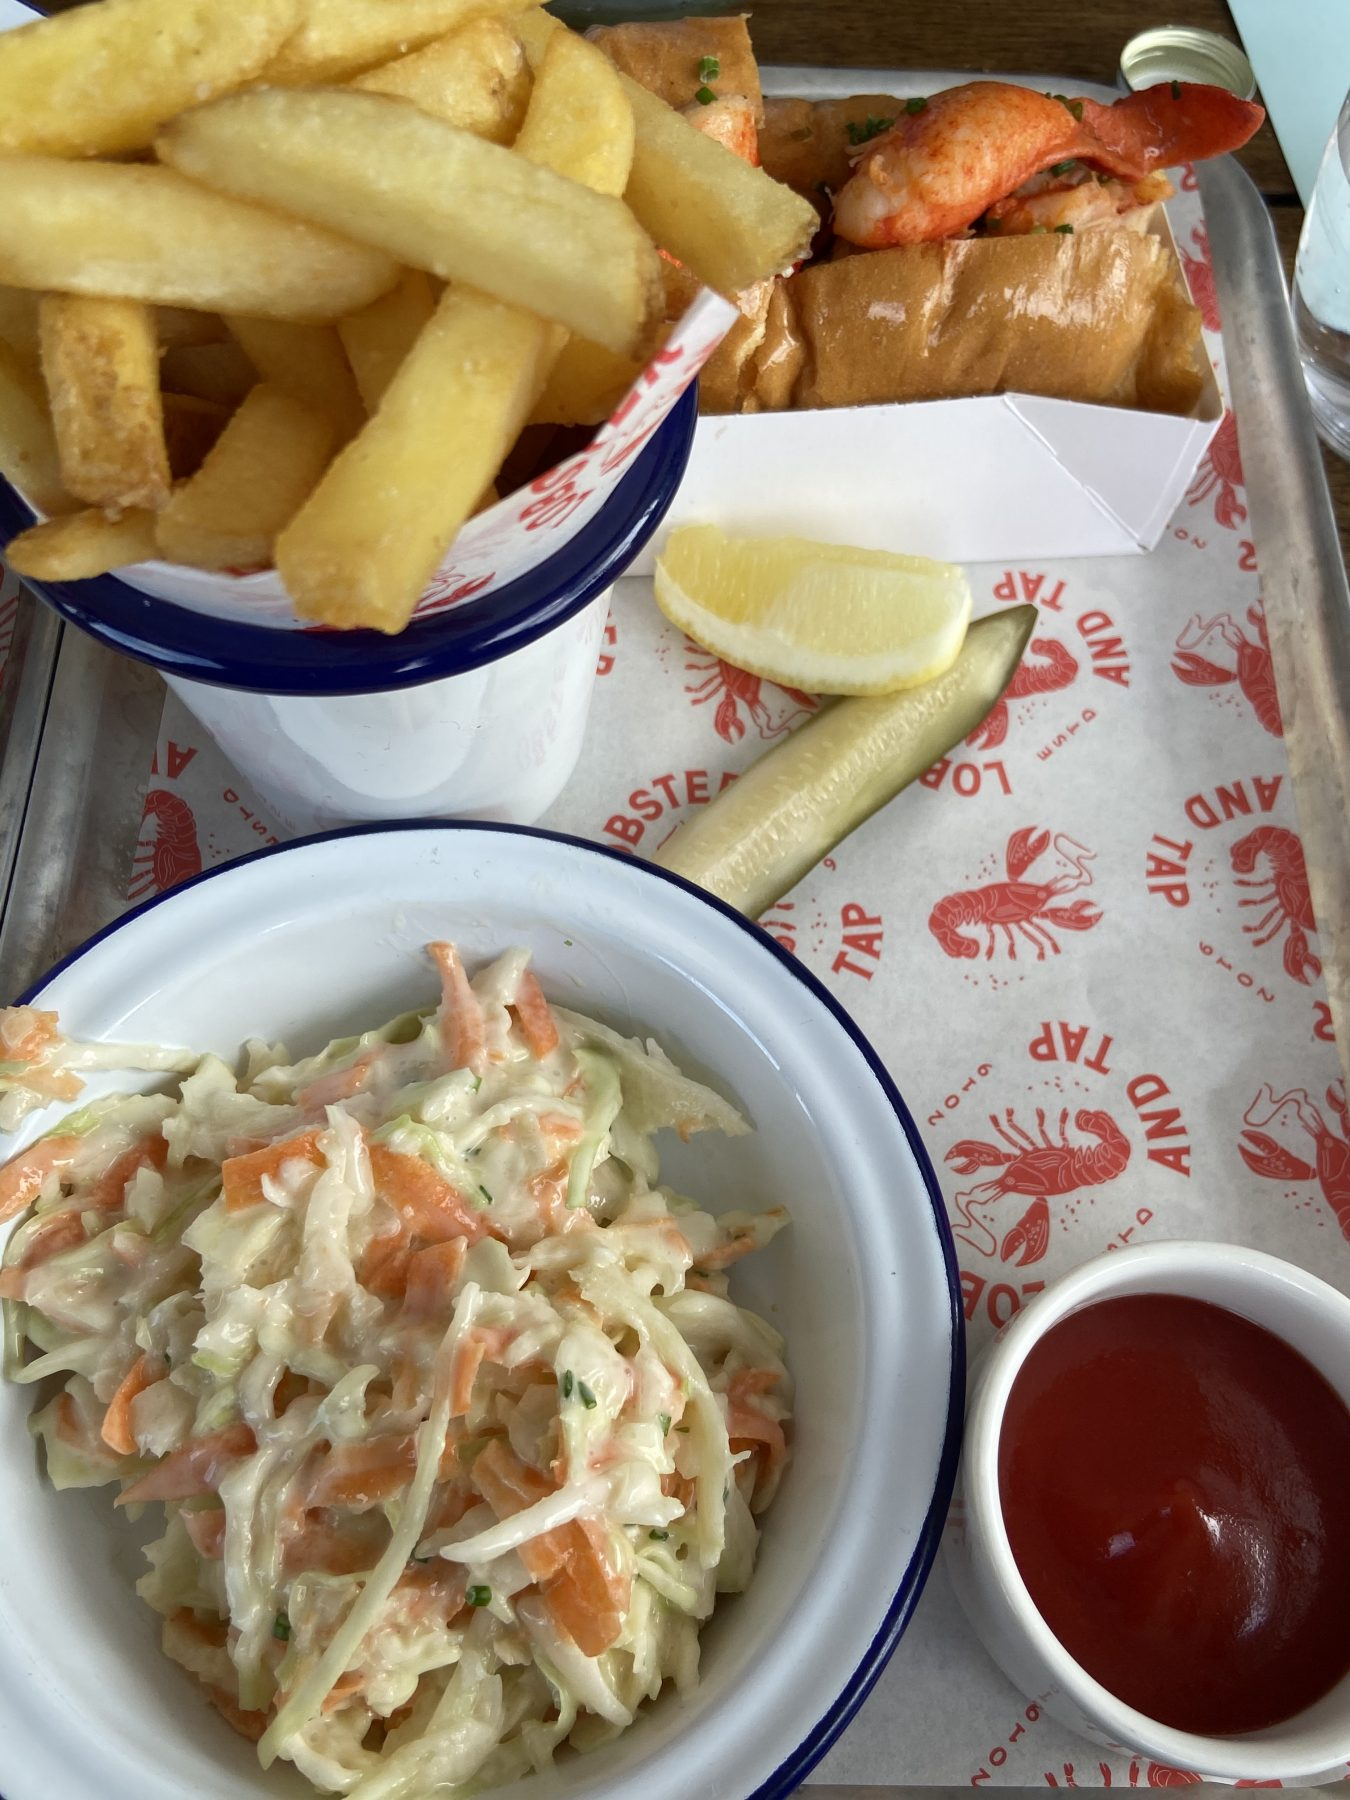 Lobster & Wagyu Chips, Coleslaw & Lobster Roll